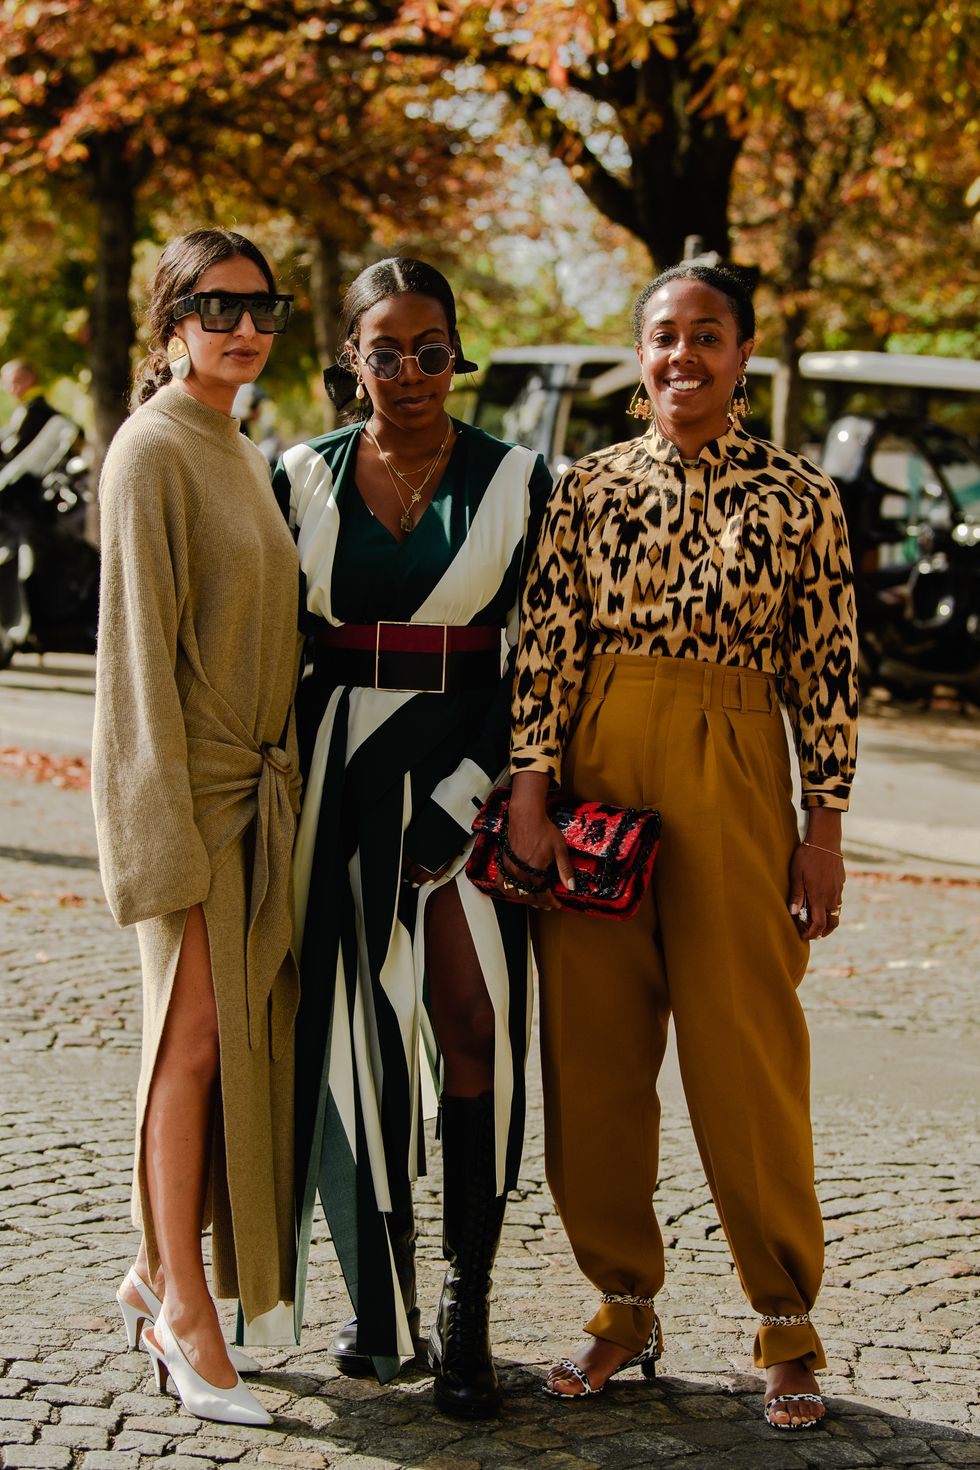 STREET STYLE IDEAS FROM THE SPRING/SUMMER '20 SHOWS